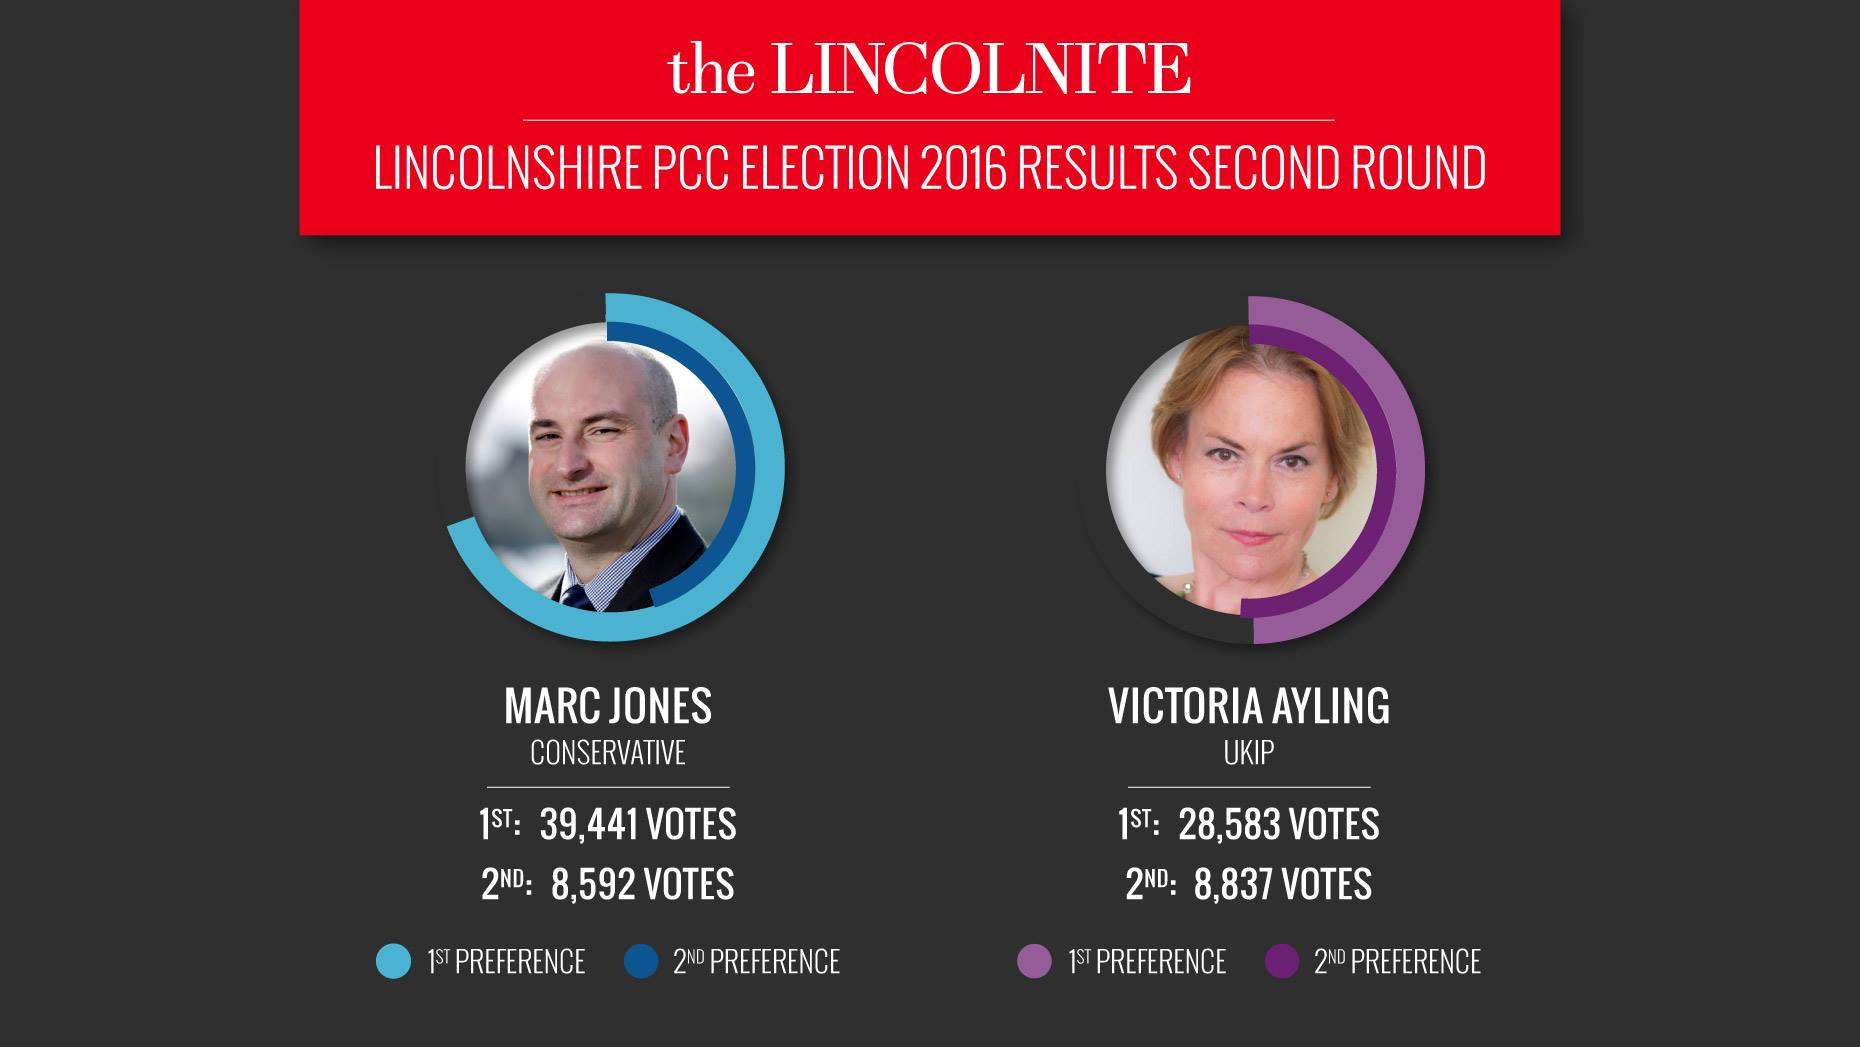 Conservative Marc Jones elected new Lincolnshire Police and